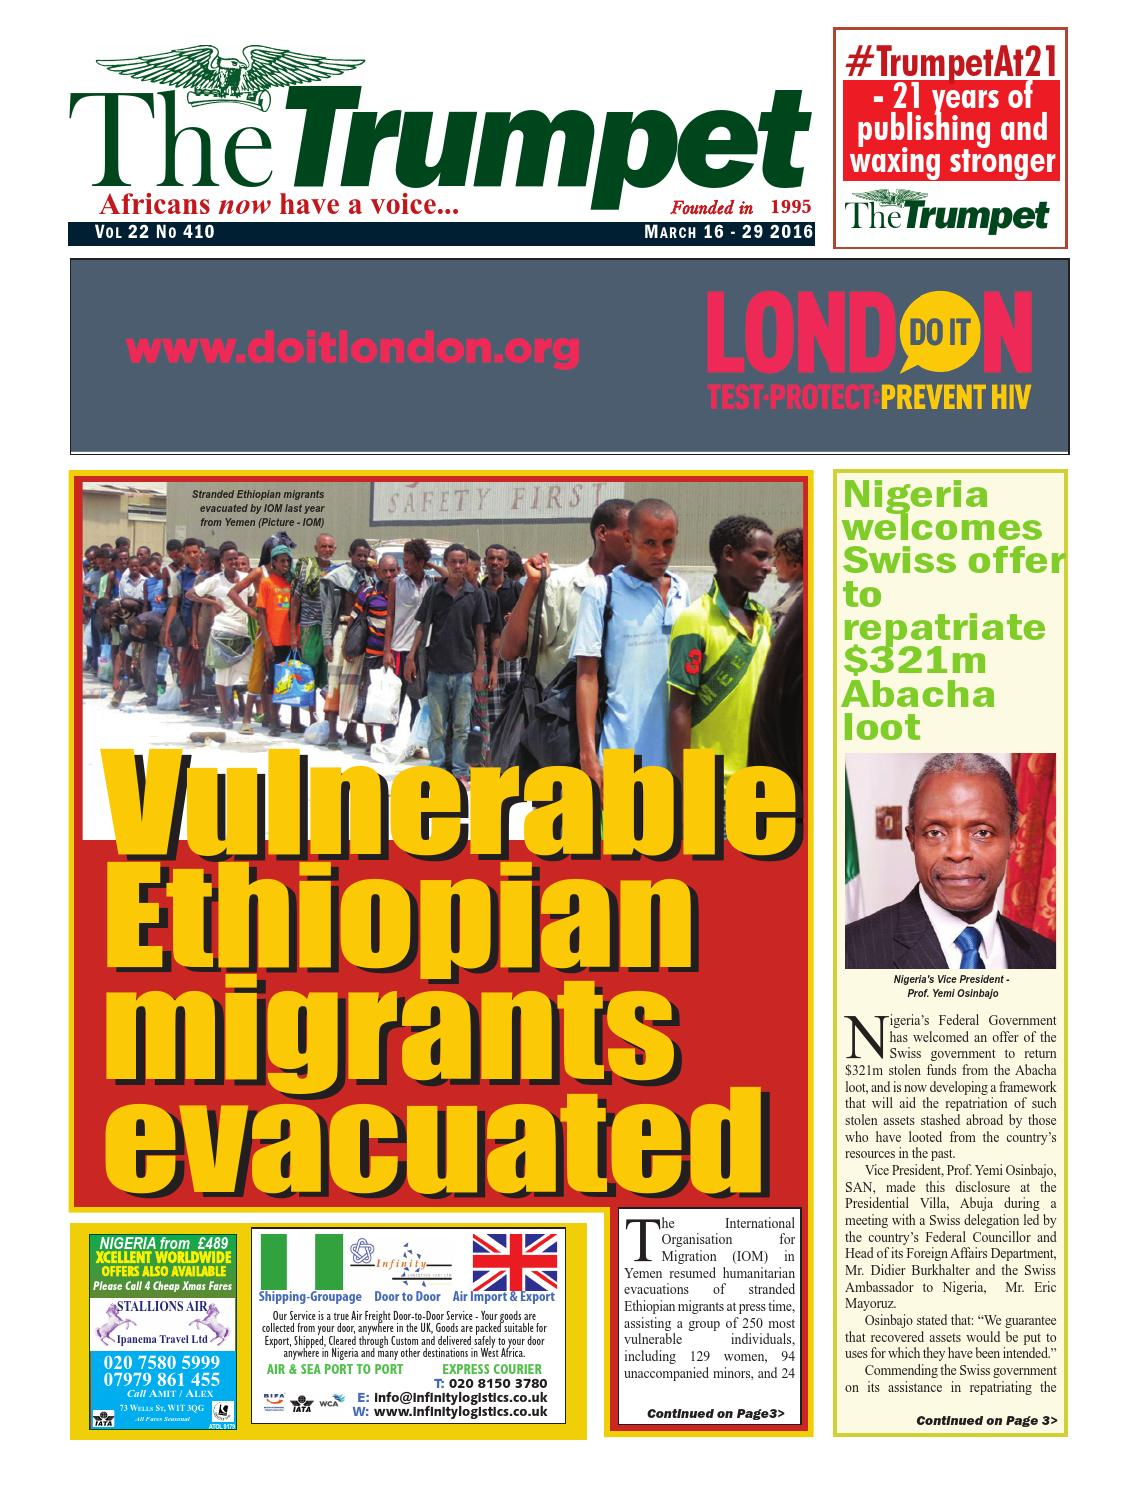 The Trumpet Newspaper Issue 410 (March 16 - 29 2016) by Trumpet